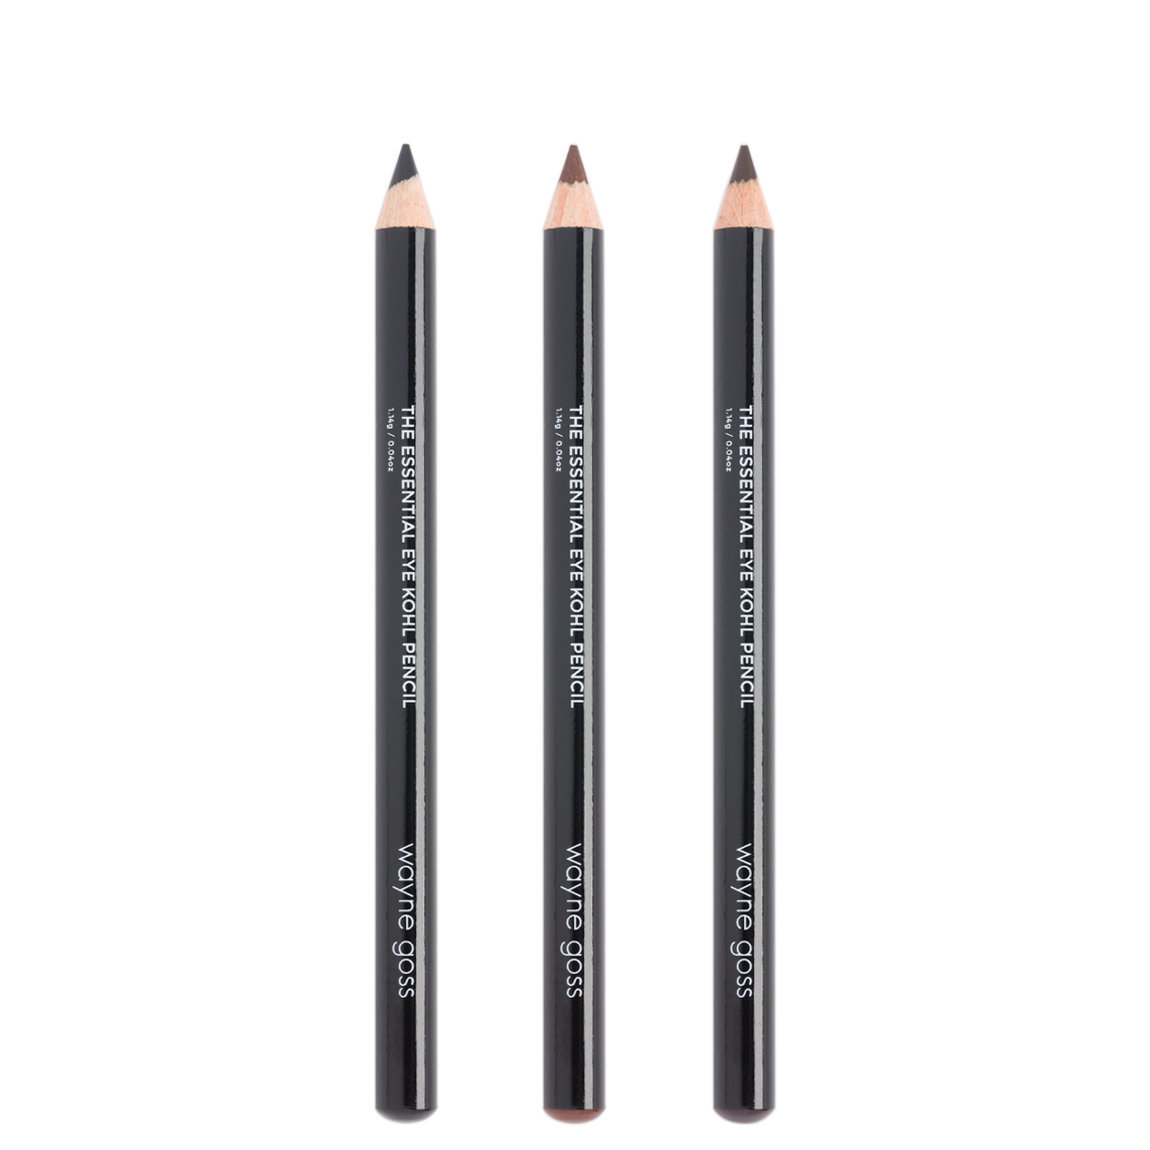 Wayne Goss The Imperial Topaz Essential Eye Kohl Pencil Set alternative view 1 - product swatch.